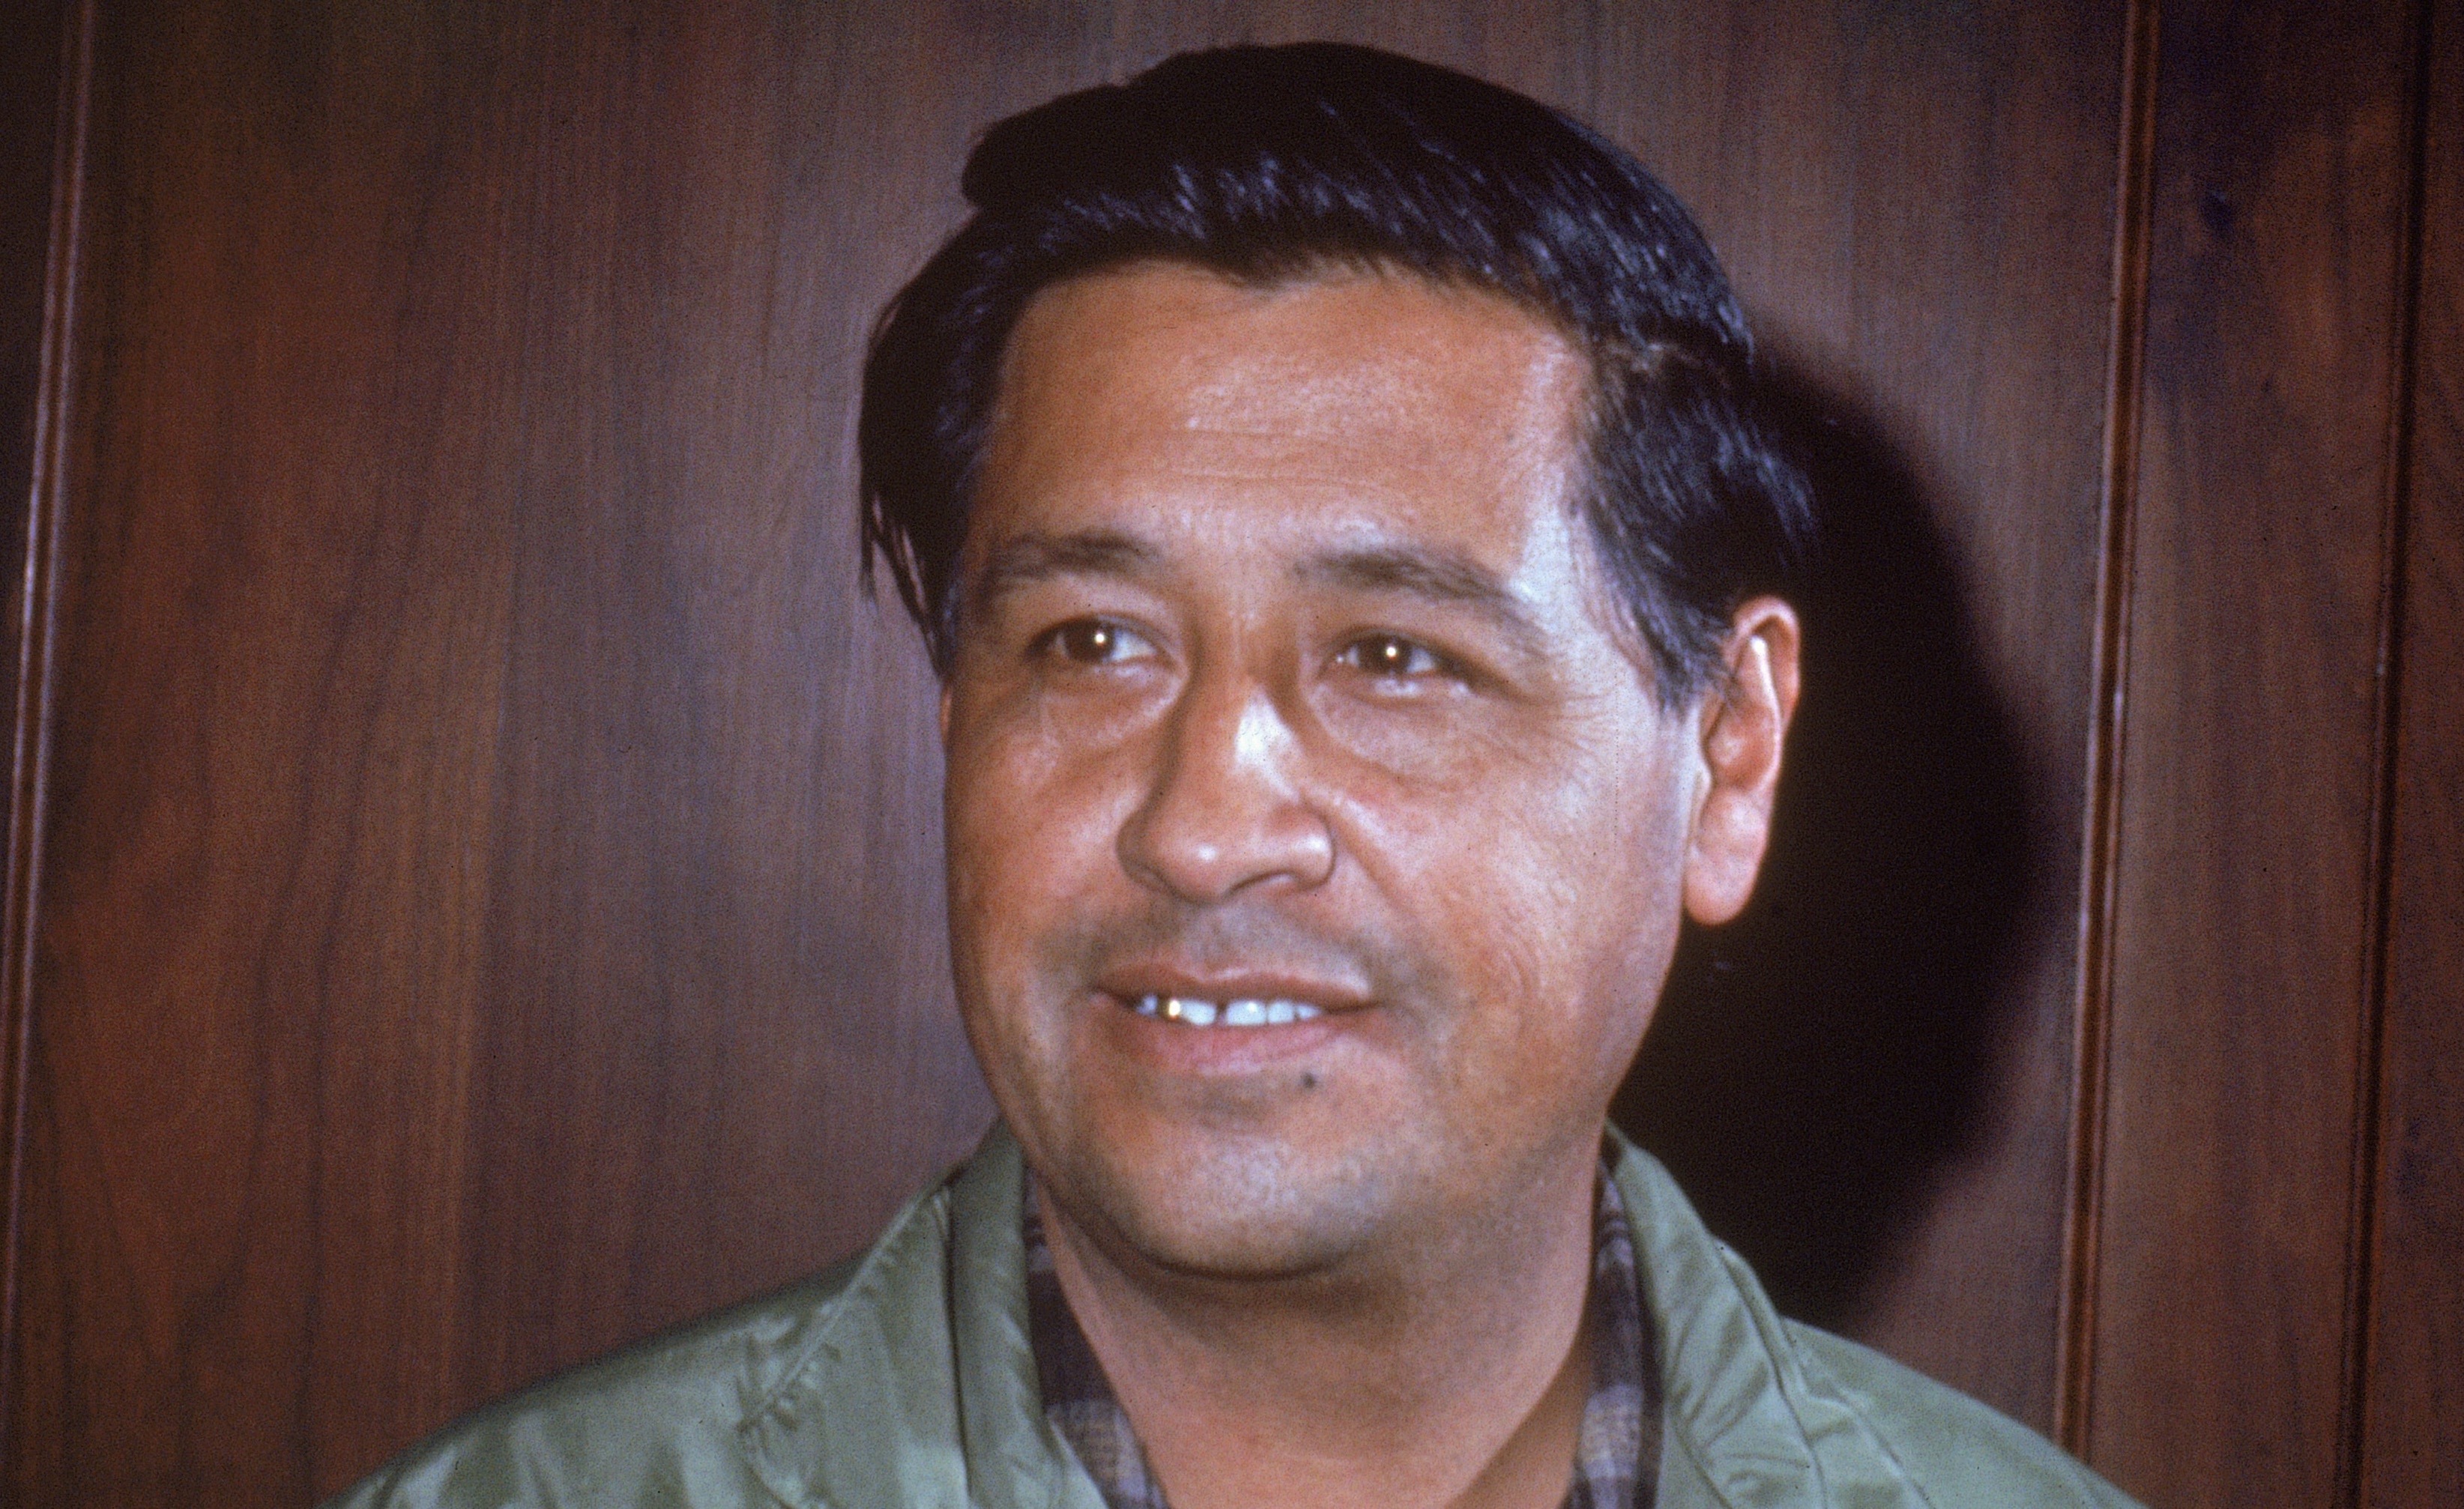 7 Powerful Cesar Chavez Quotes That Speak To The Struggle Our Community Faces Today